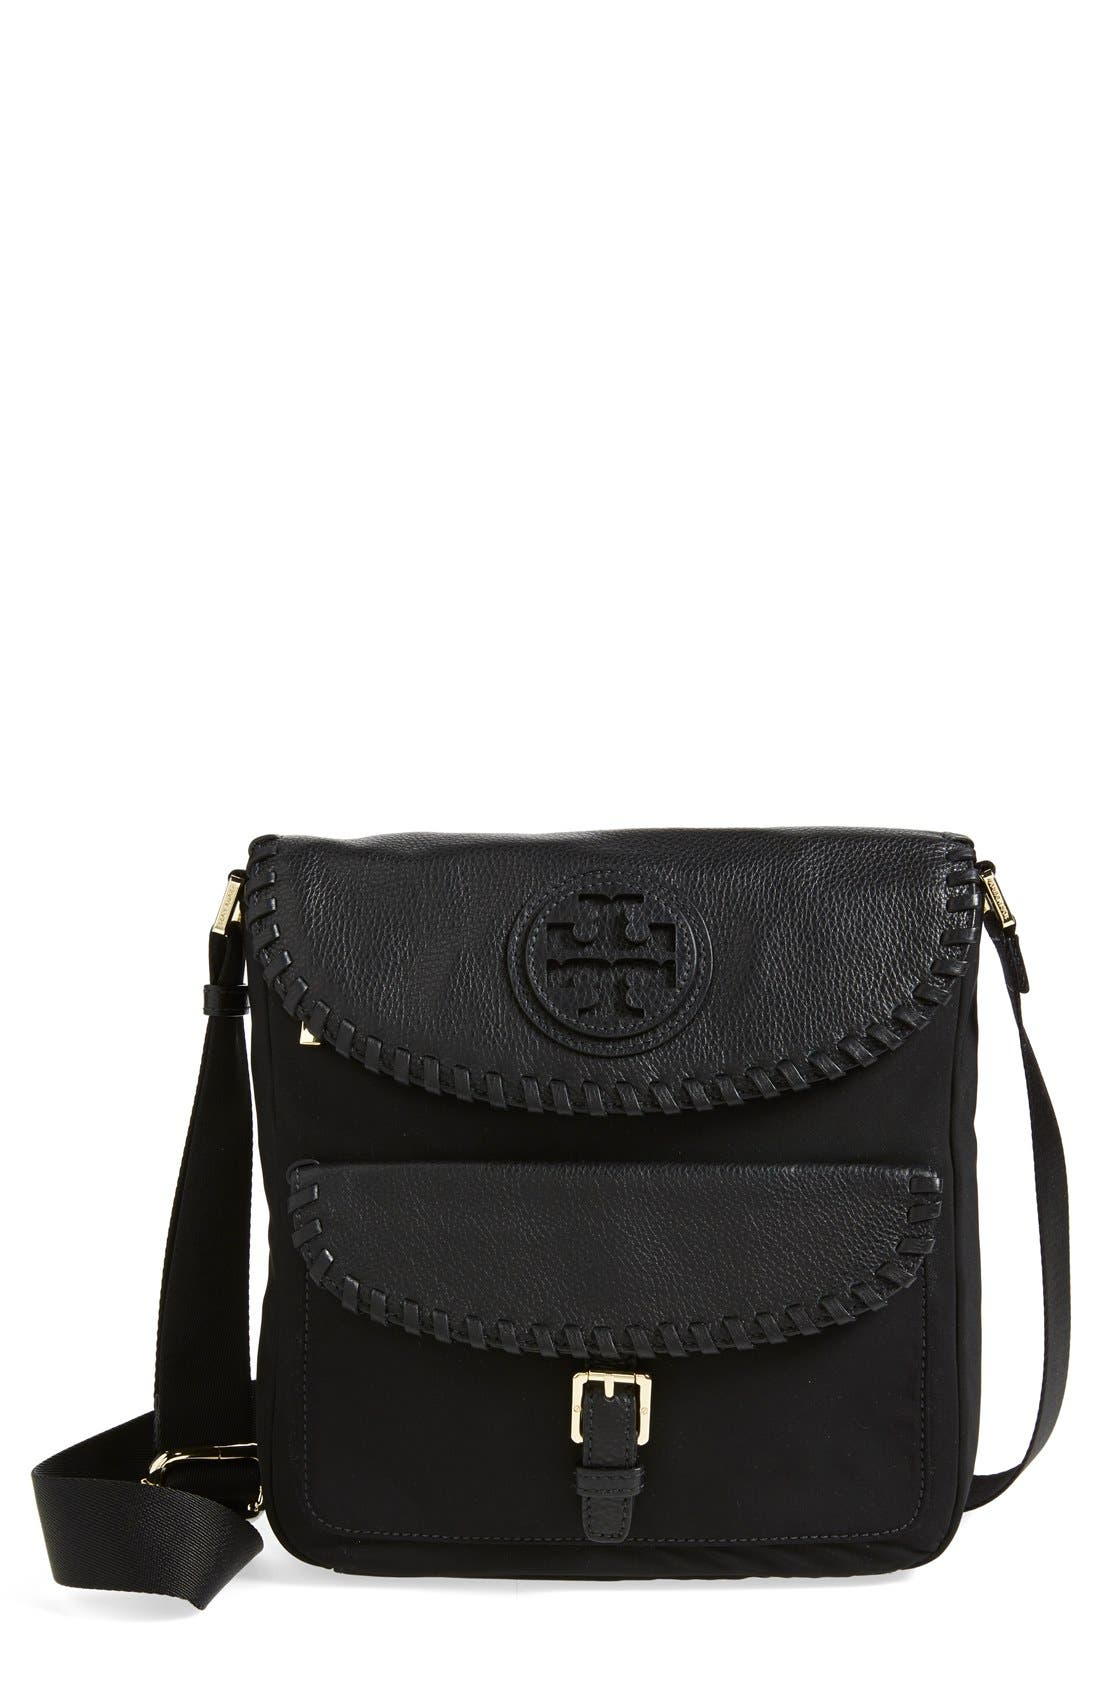 Main Image - Tory Burch 'Marion' Messenger Bag